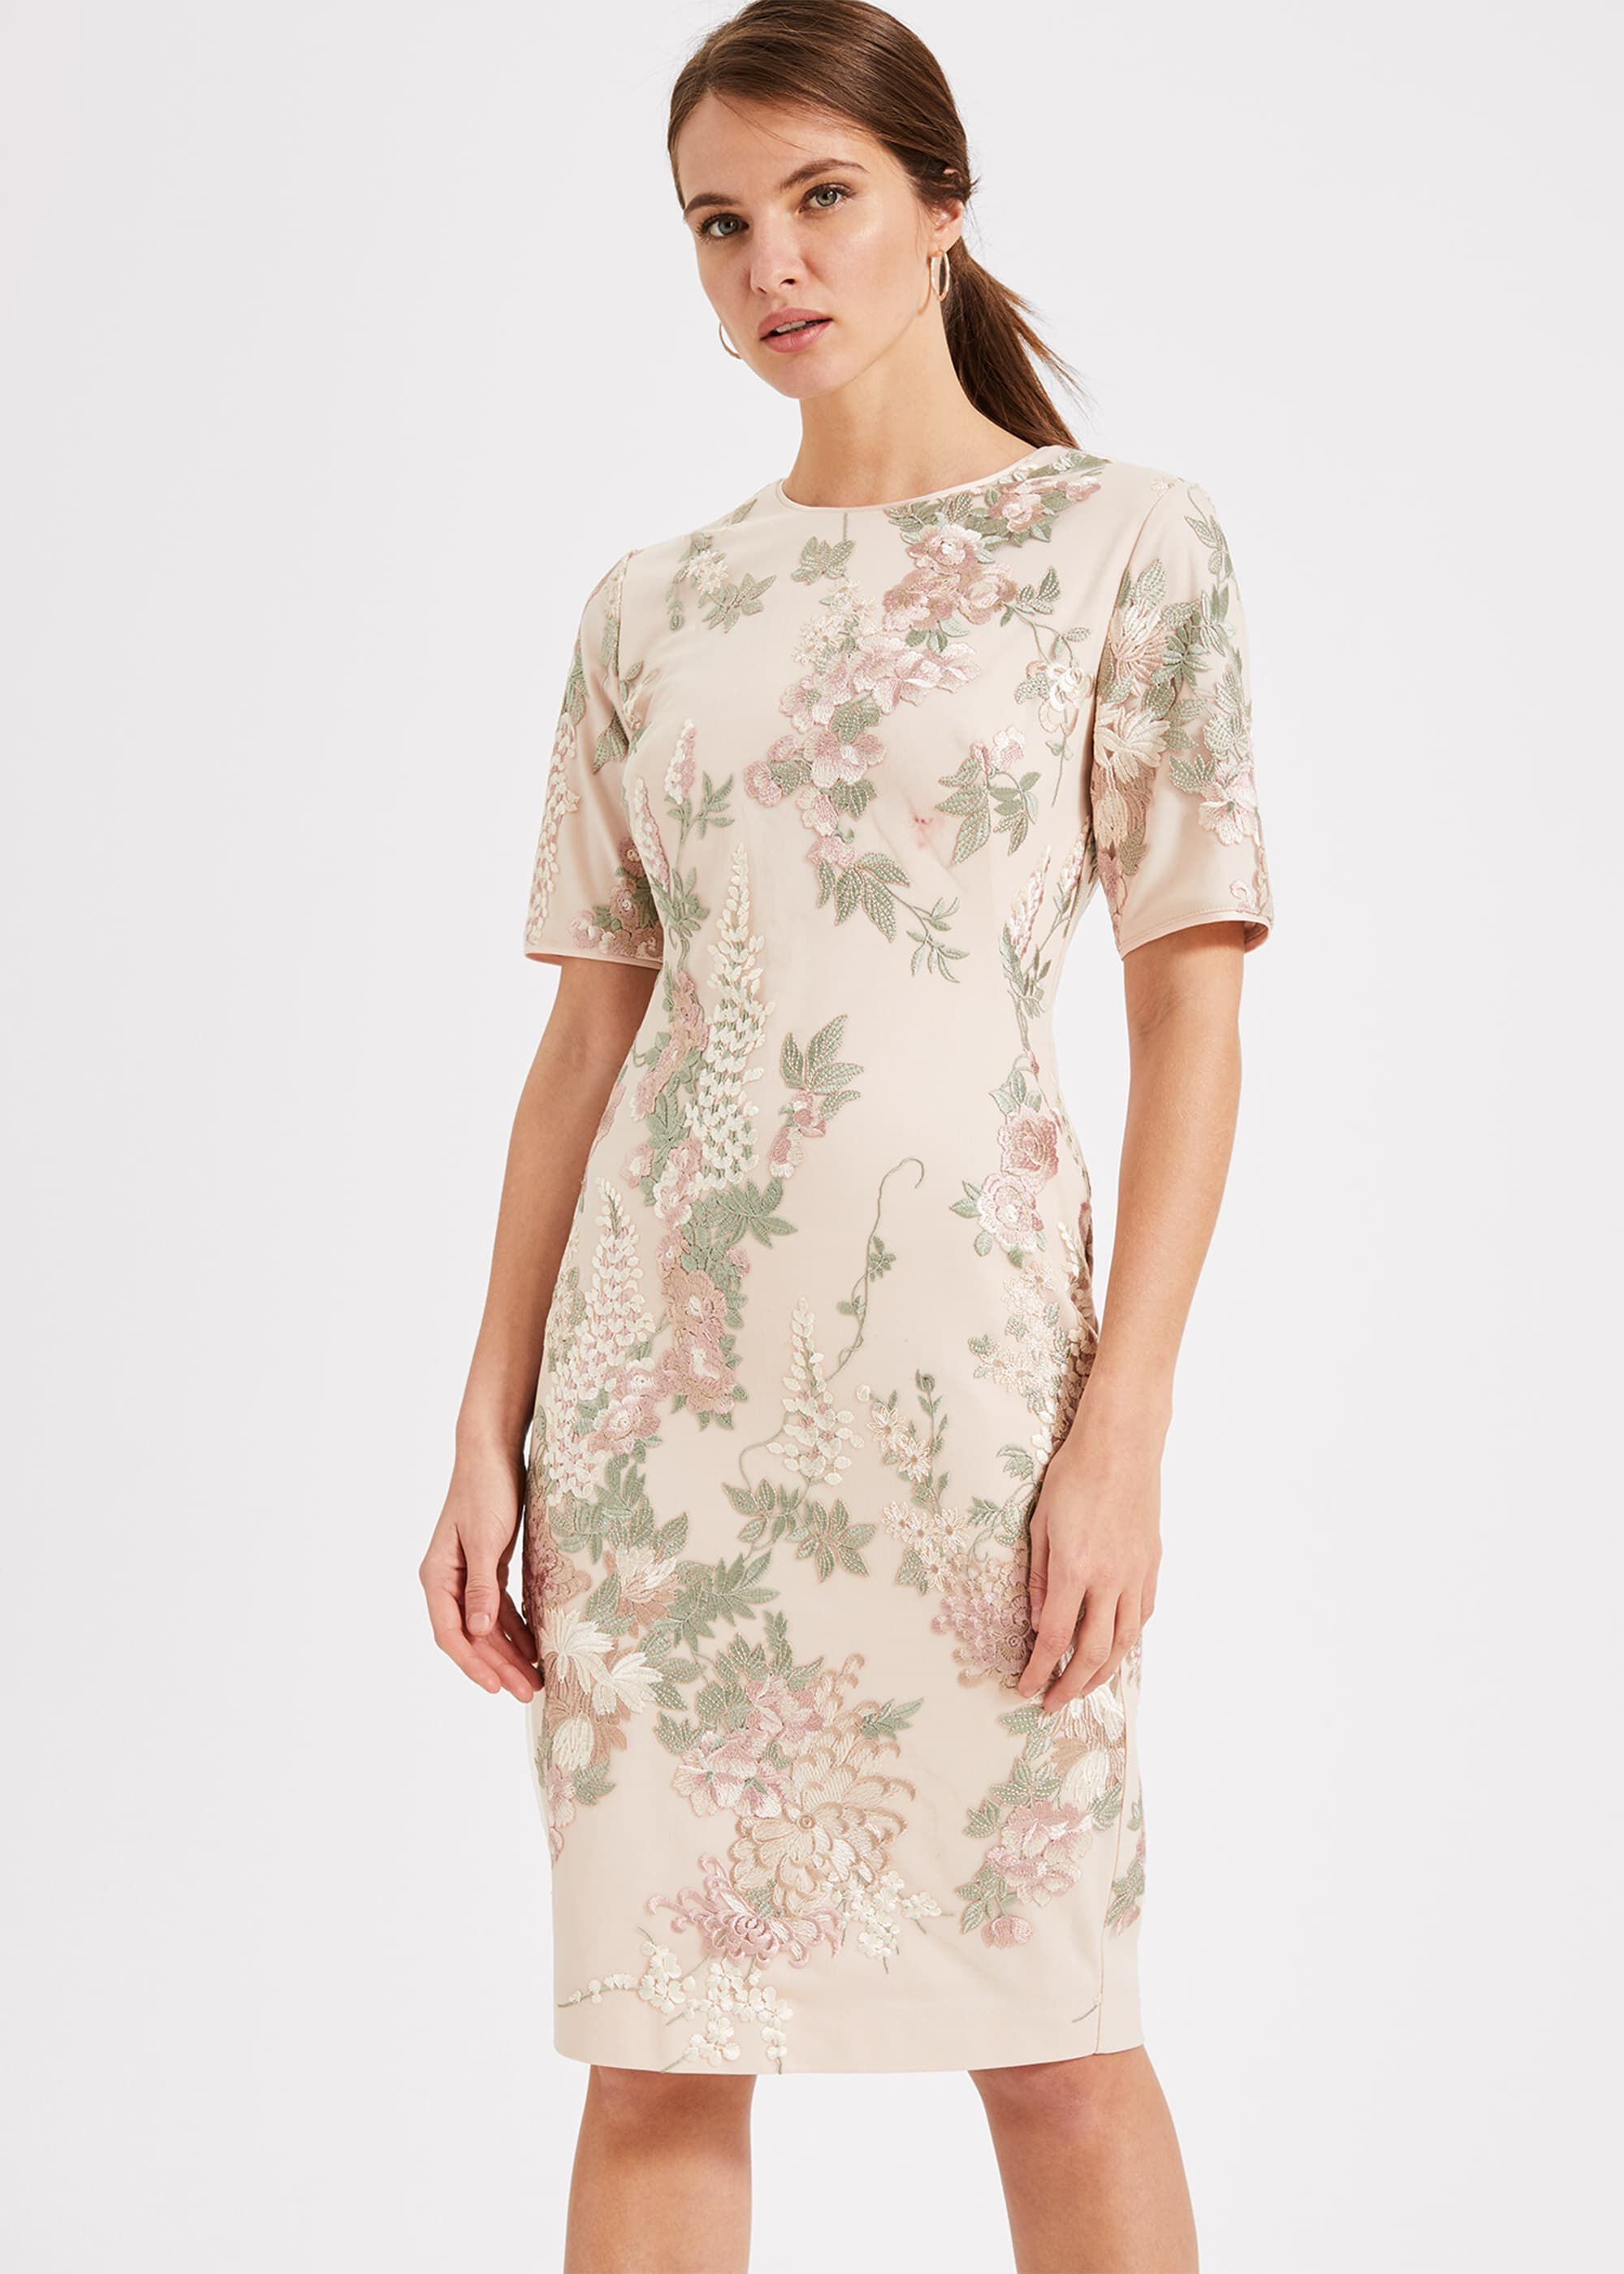 Phase Eight Annalise Embroidered Dress, Pink, Shift, Occasion Dress